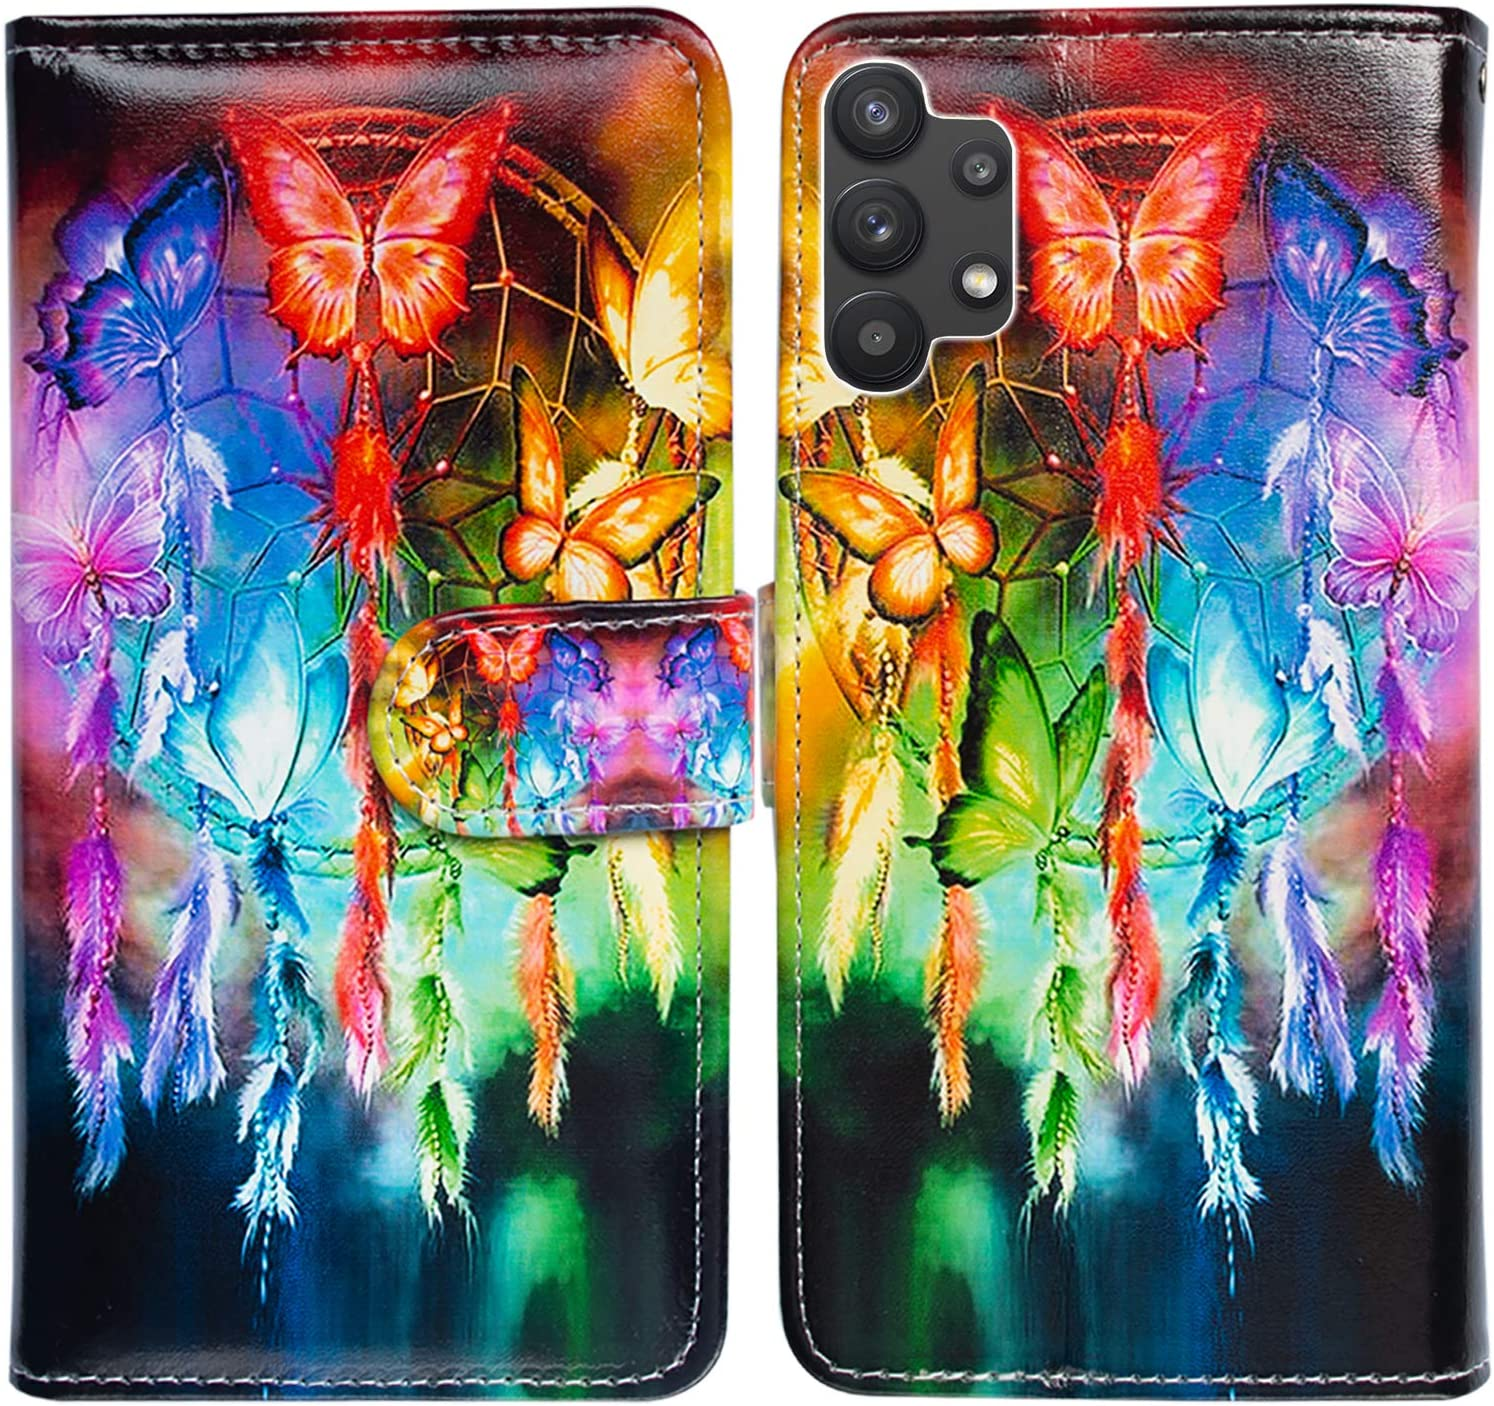 Galaxy A32 5G Case,Bcov Butterfly Dream Catcher Leather Flip Phone Case Wallet Cover with Card Slot Holder Kickstand for Samsung Galaxy A32 5G 2021